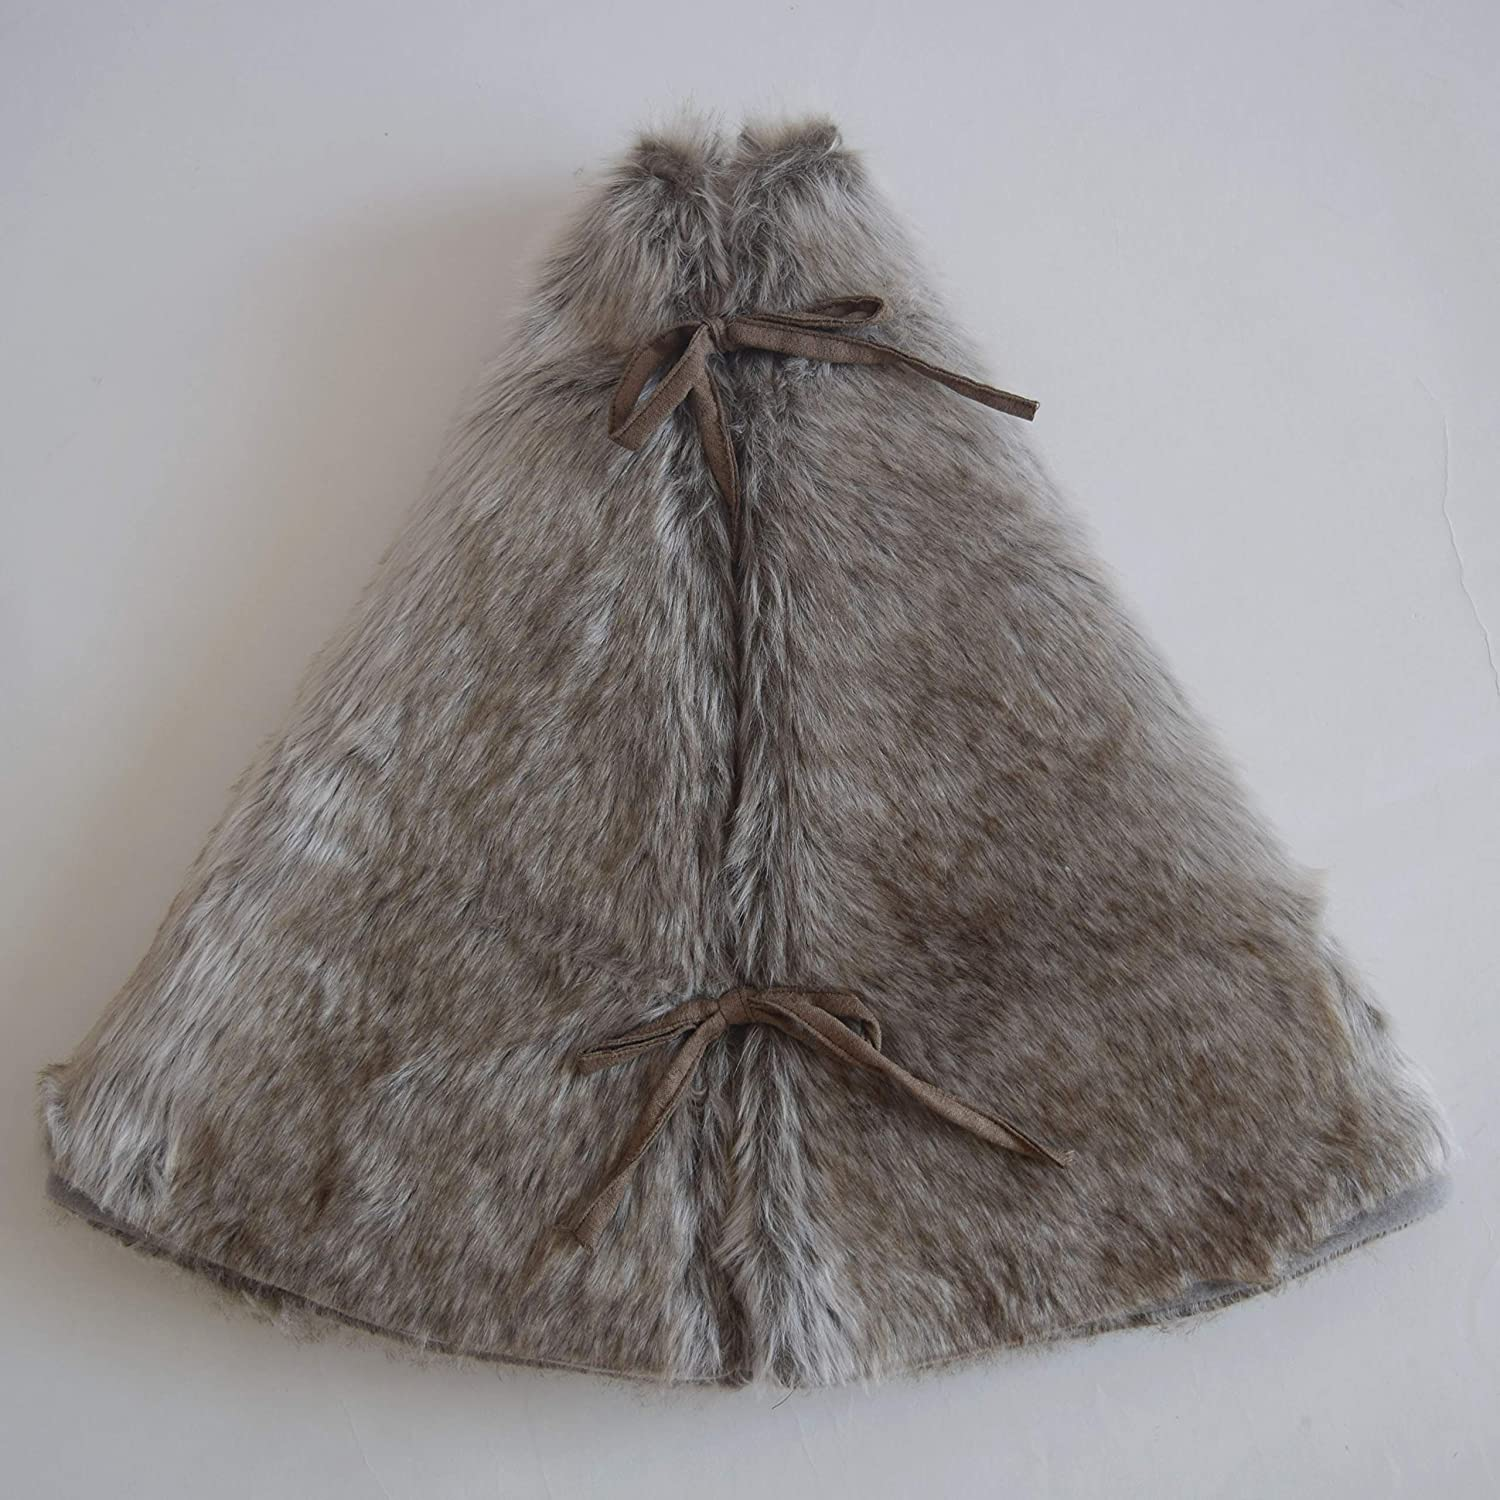 Gireshome Deluxe Grey Soft Plush Faux Fur Christmas Tree Skirt,for Table Top Trees 20inch